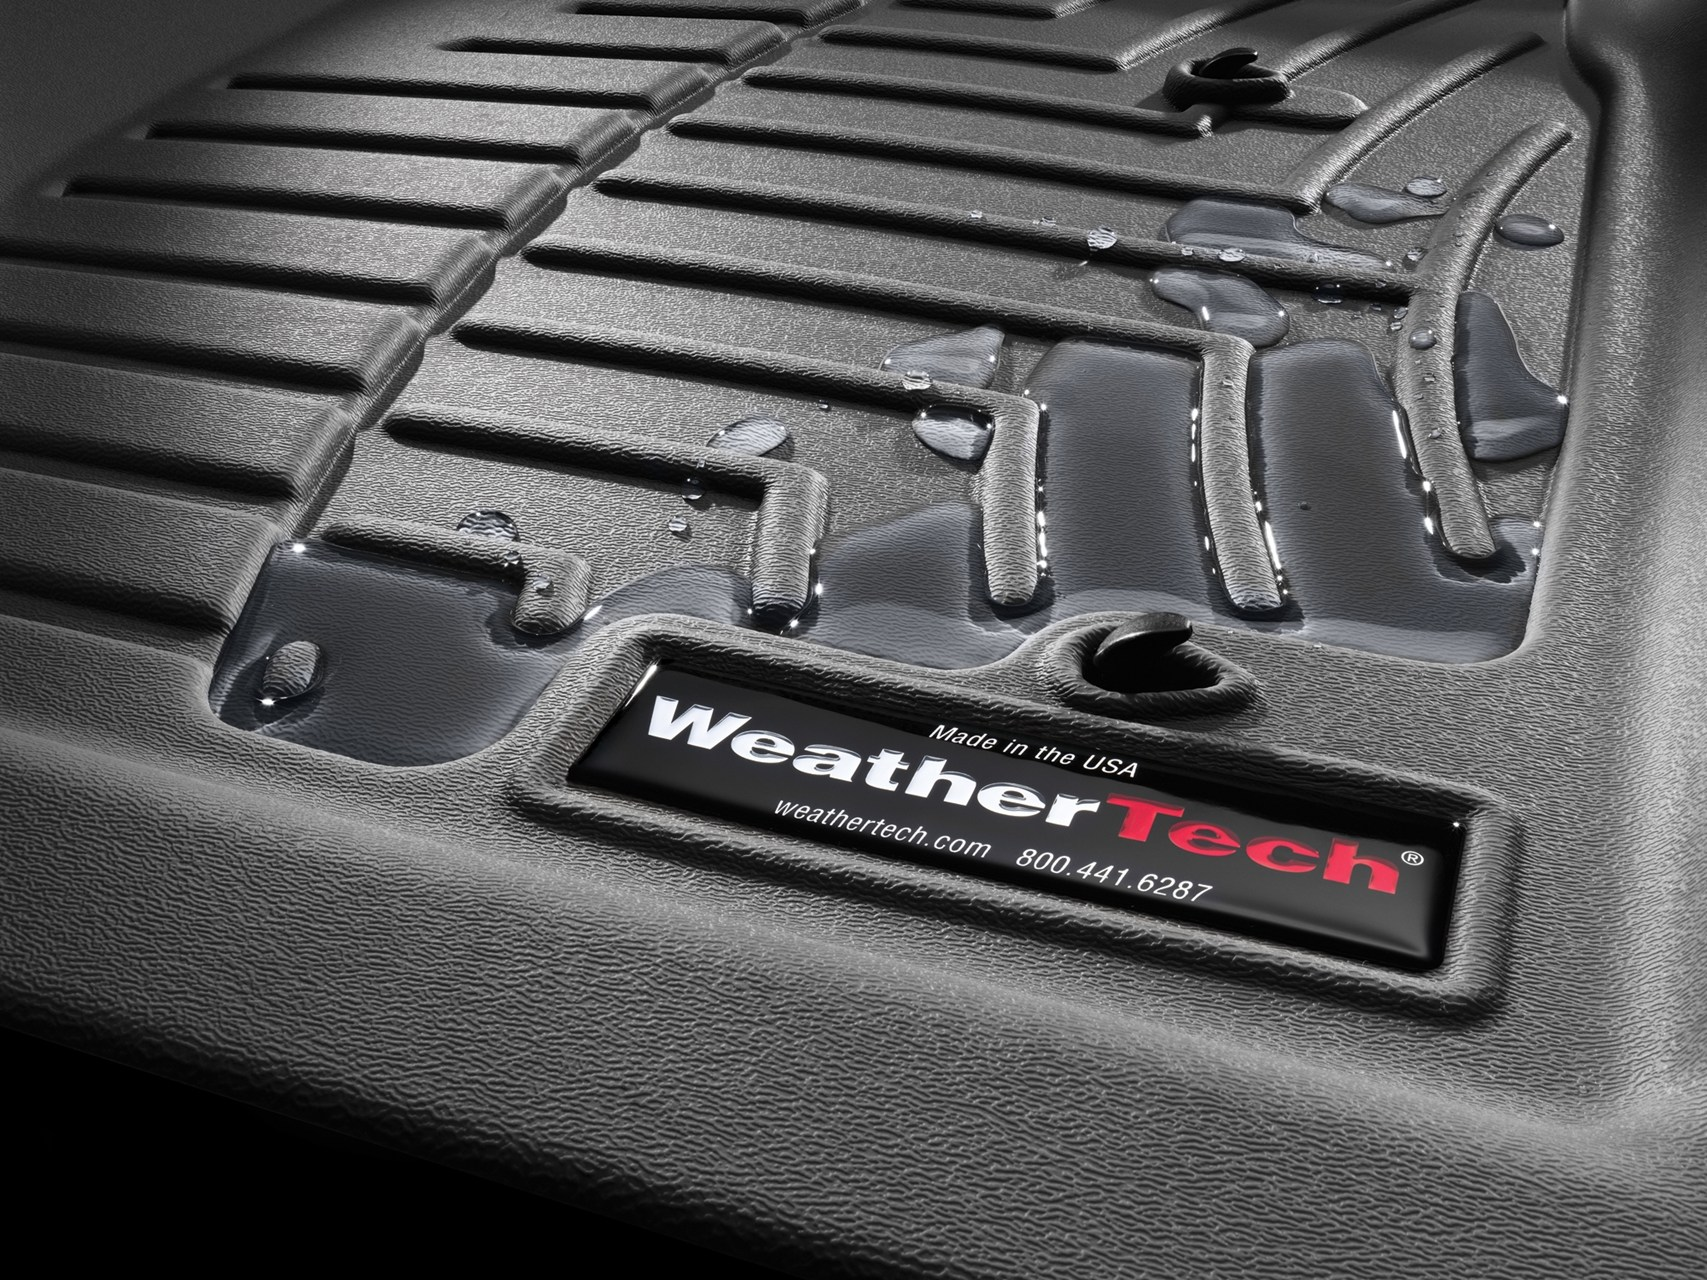 silverado floorliner ford laser weathertech digitalfit mats explorer tech by measured floor weather chevrolet liners